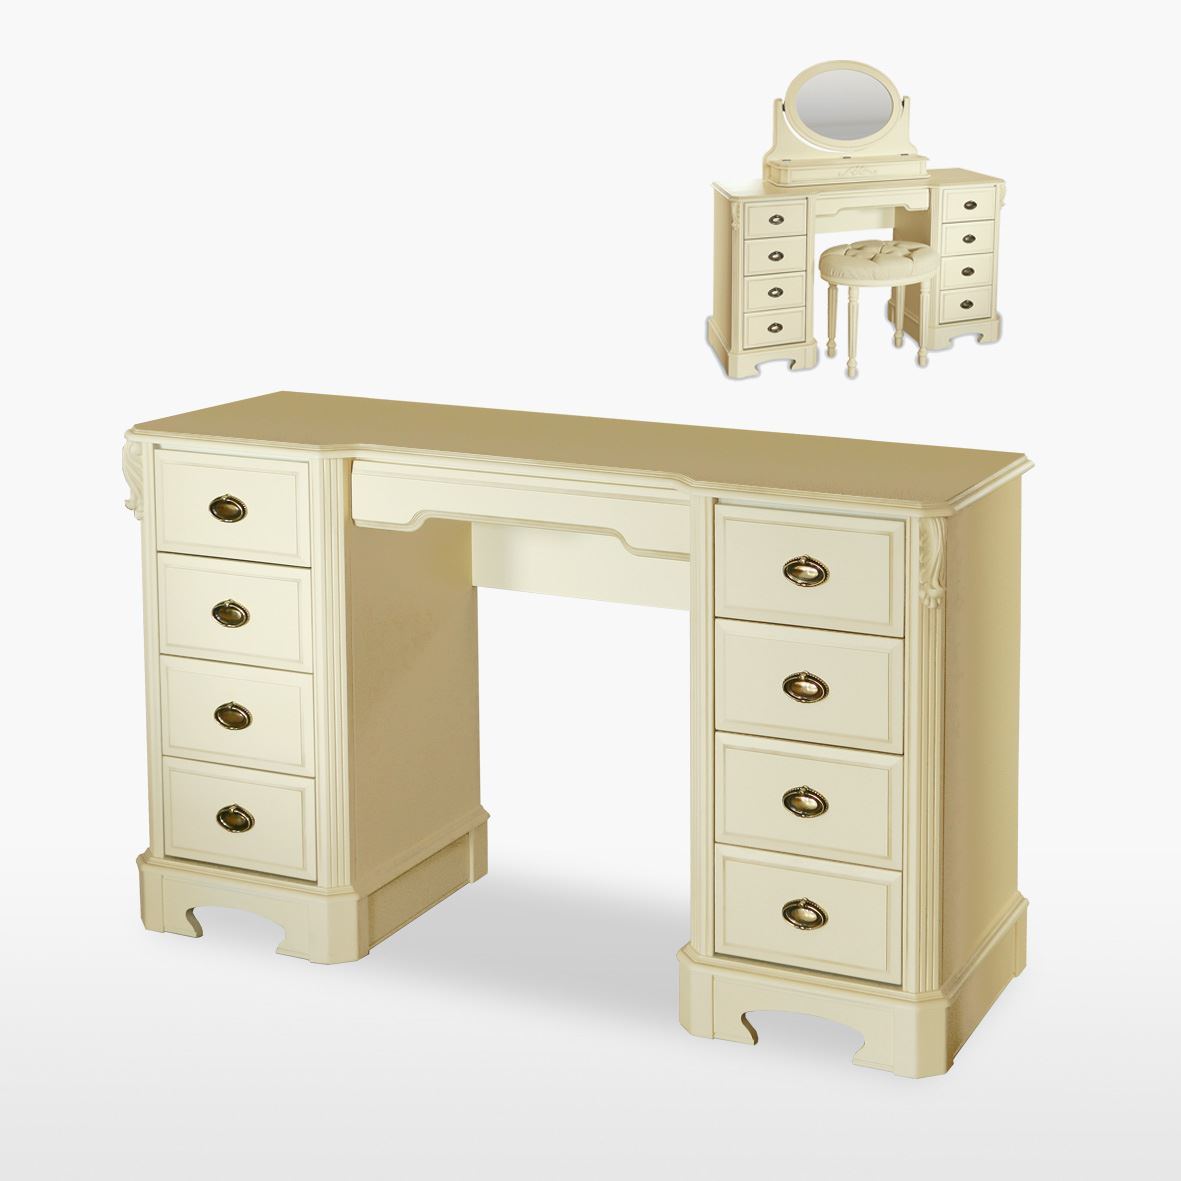 Amore' - Dressing Table - ABJ249